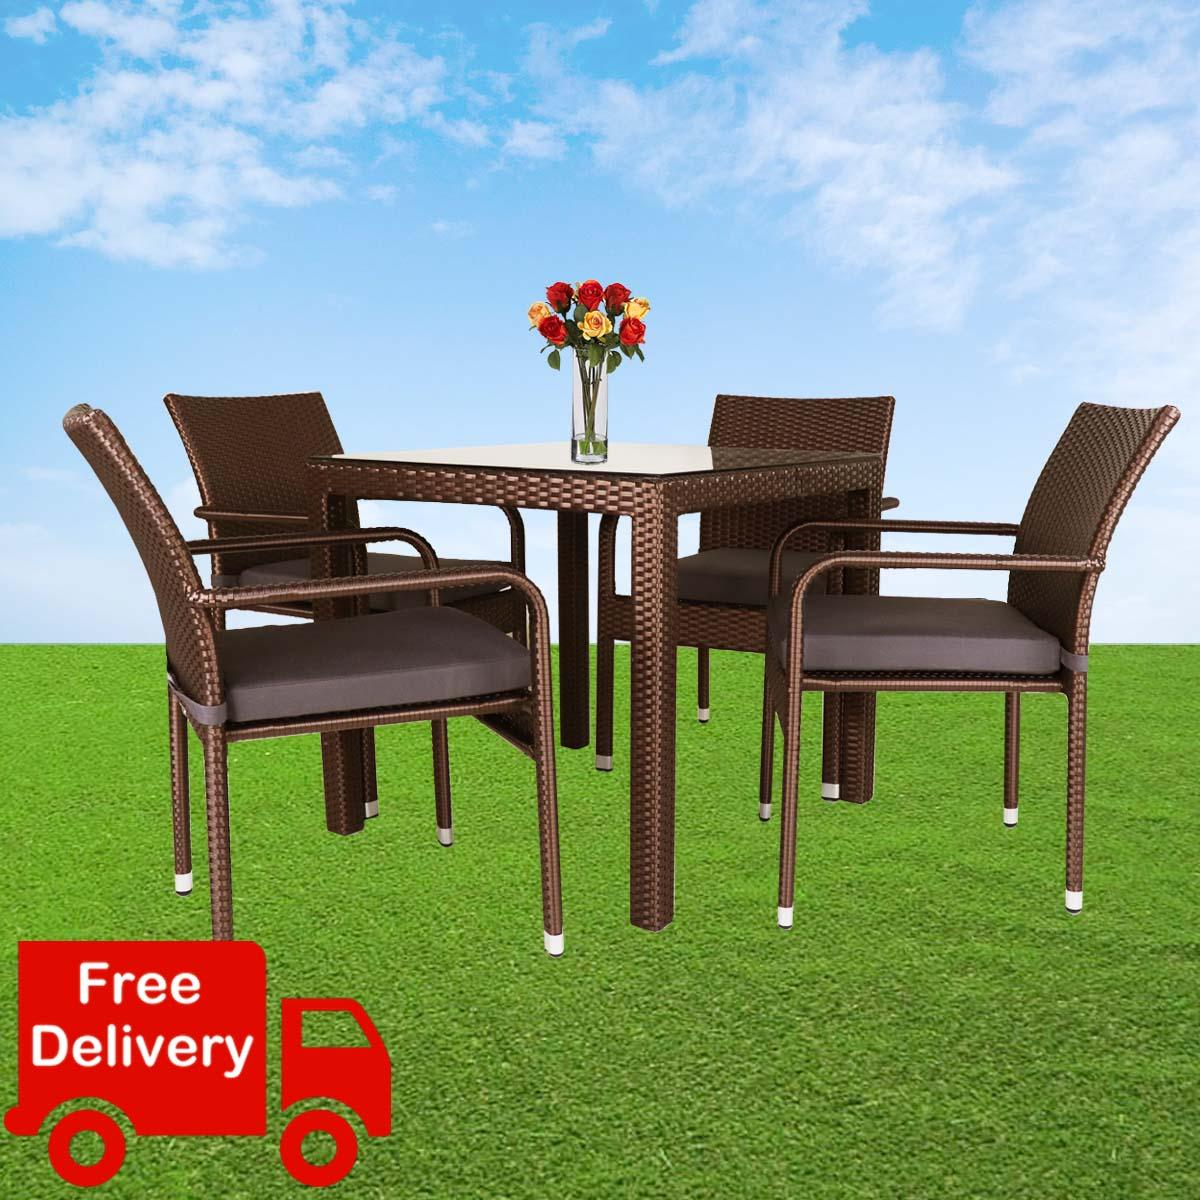 Outdoor Dining Set 1 Table + 4 Chairs. Outdoor Furniture Living, Wicker Table. FREE Assembly